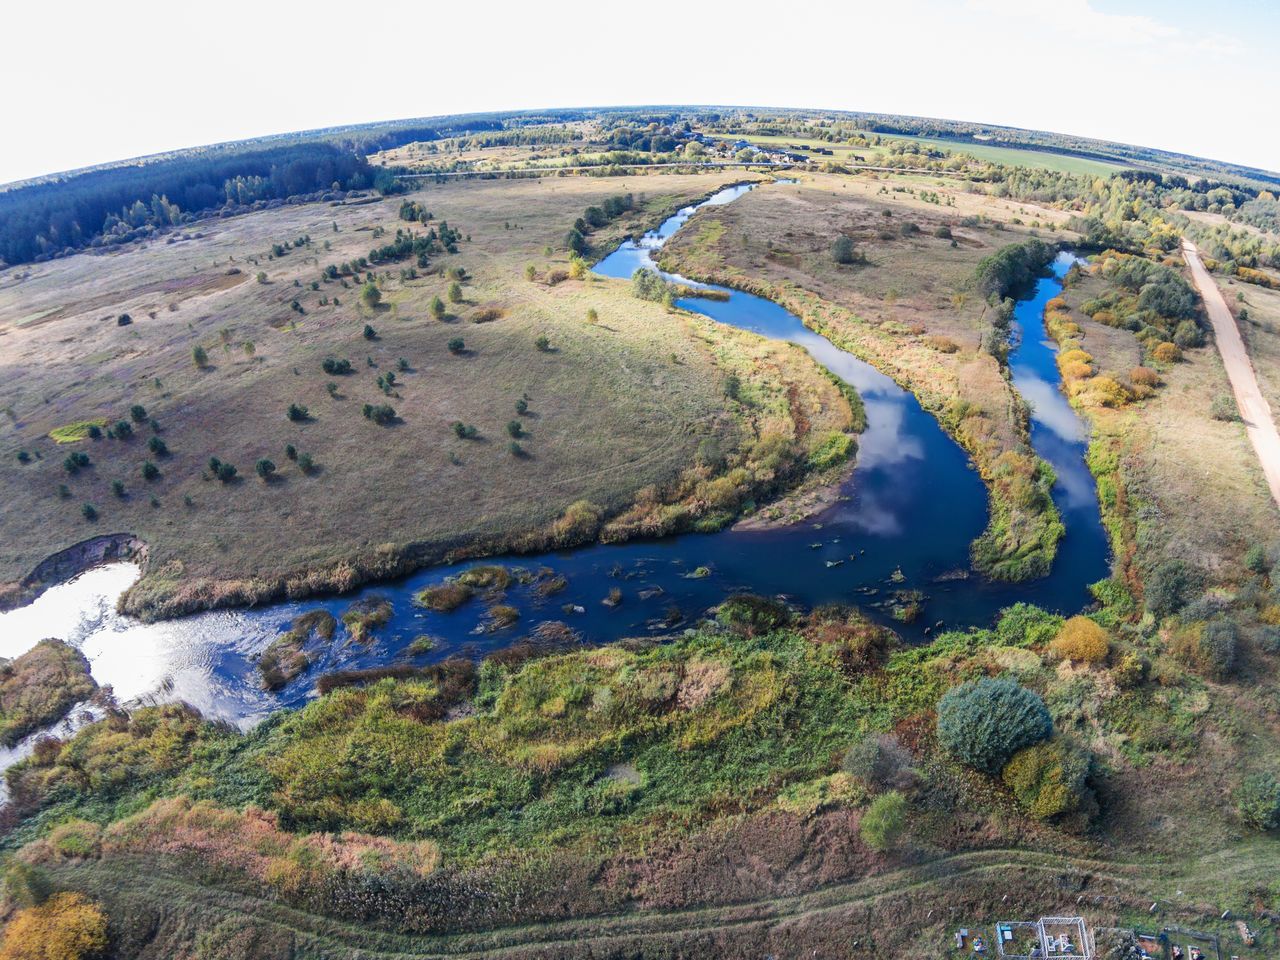 """Vorozhba River flows into the river Volchina. From the series """"Flying in the hamlet Lunacharsky."""" A Bird's Eye View Aerial View Beauty In Nature Blue Day Drone  Dronephotography Grass Landscape Nature No People Outdoors River Scenics Top Perspective Tranquil Scene Tranquility Water"""